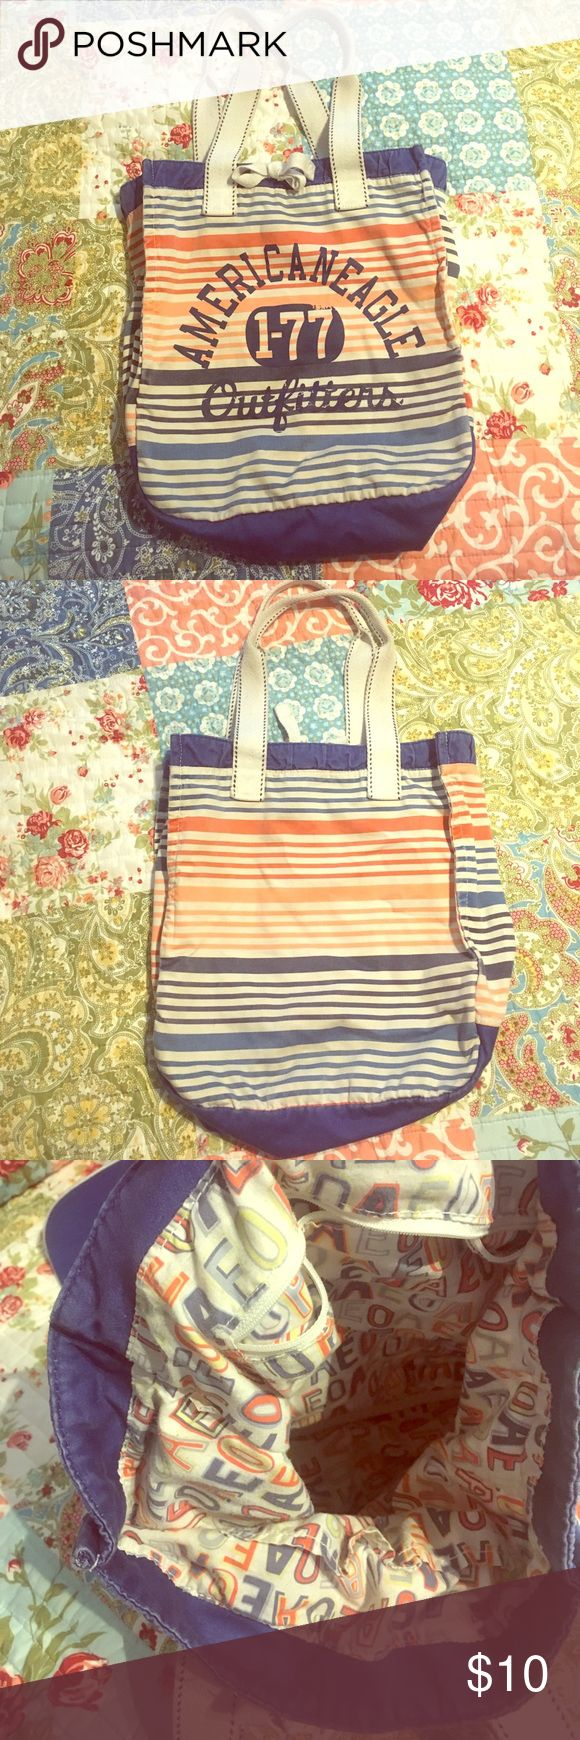 Selling this American Eagle Tote on Poshmark! My username is: emmic17. #shopmycloset #poshmark #fashion #shopping #style #forsale #American Eagle Outfitters #Handbags